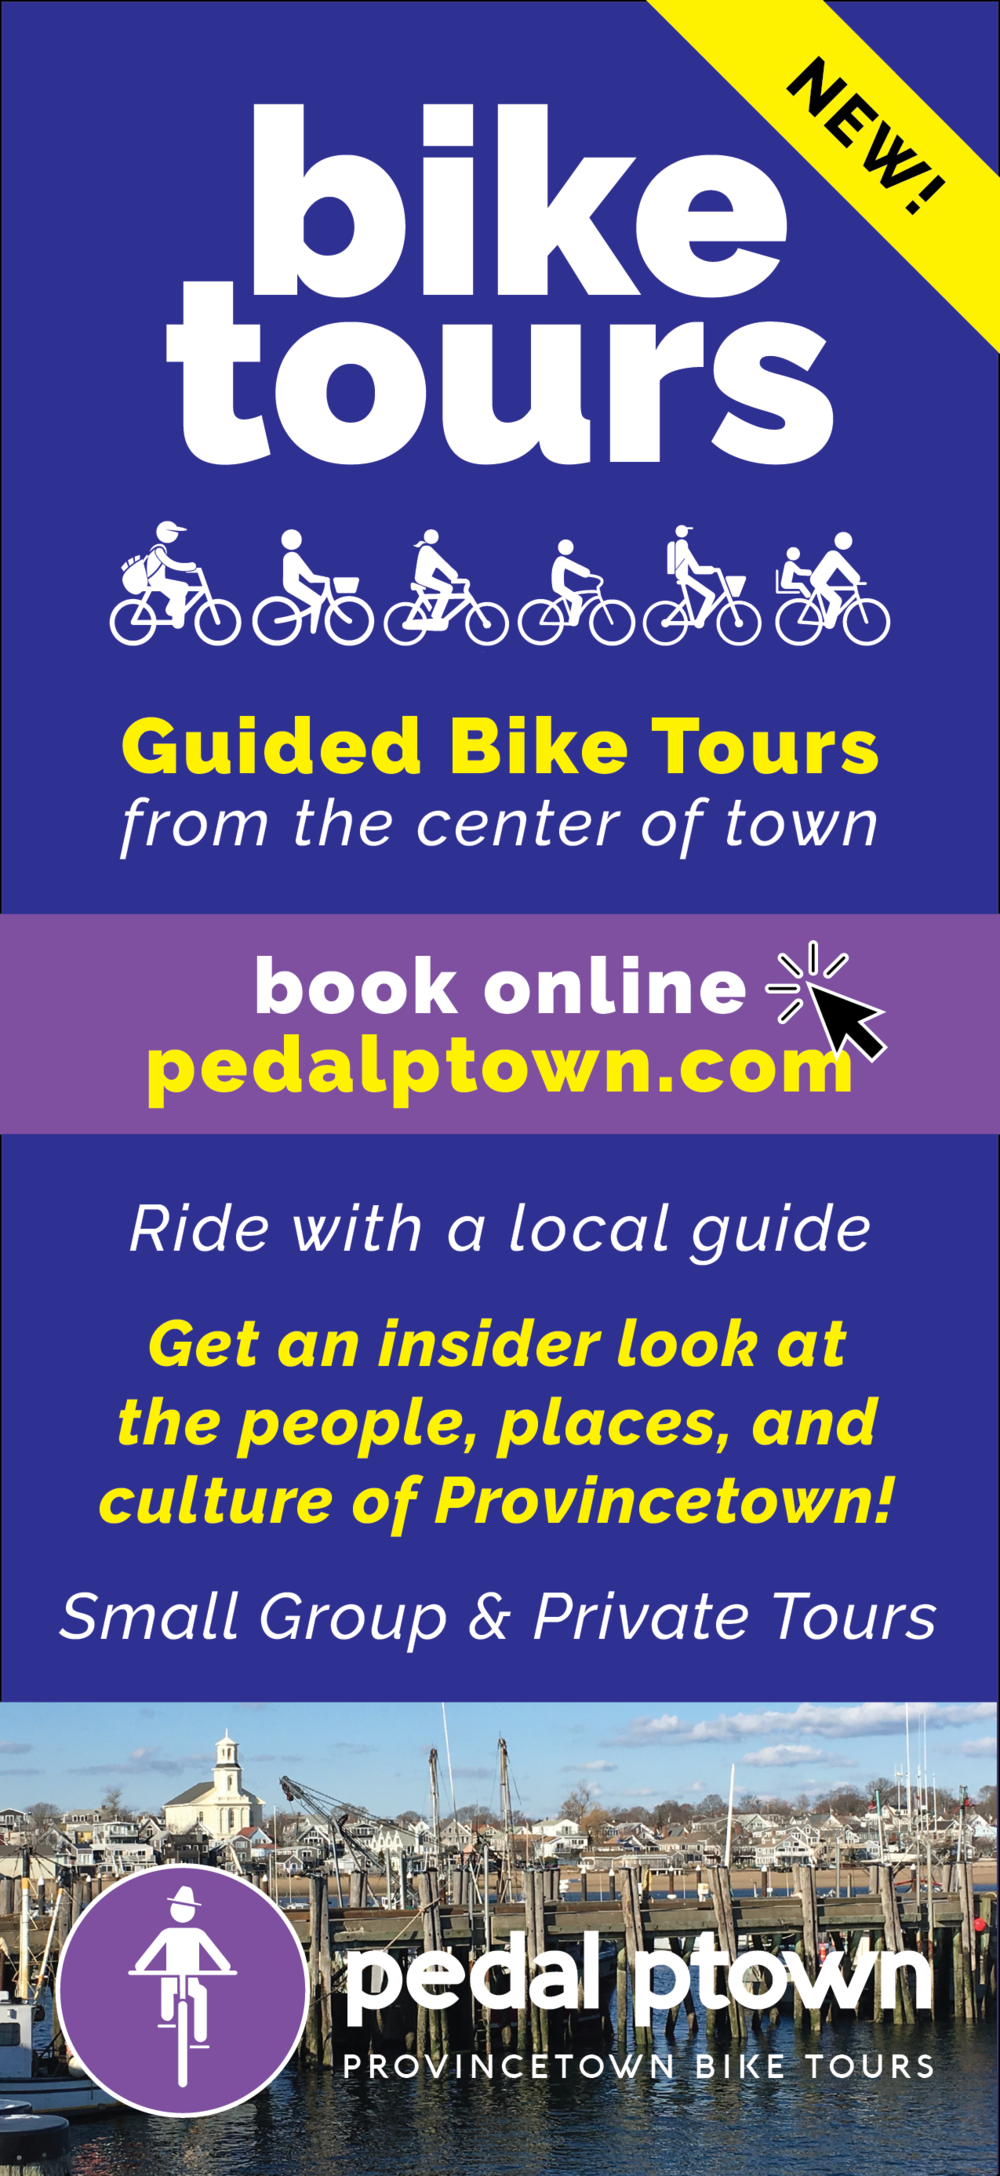 Mock-up of the front of a Pedal Ptown rack card.